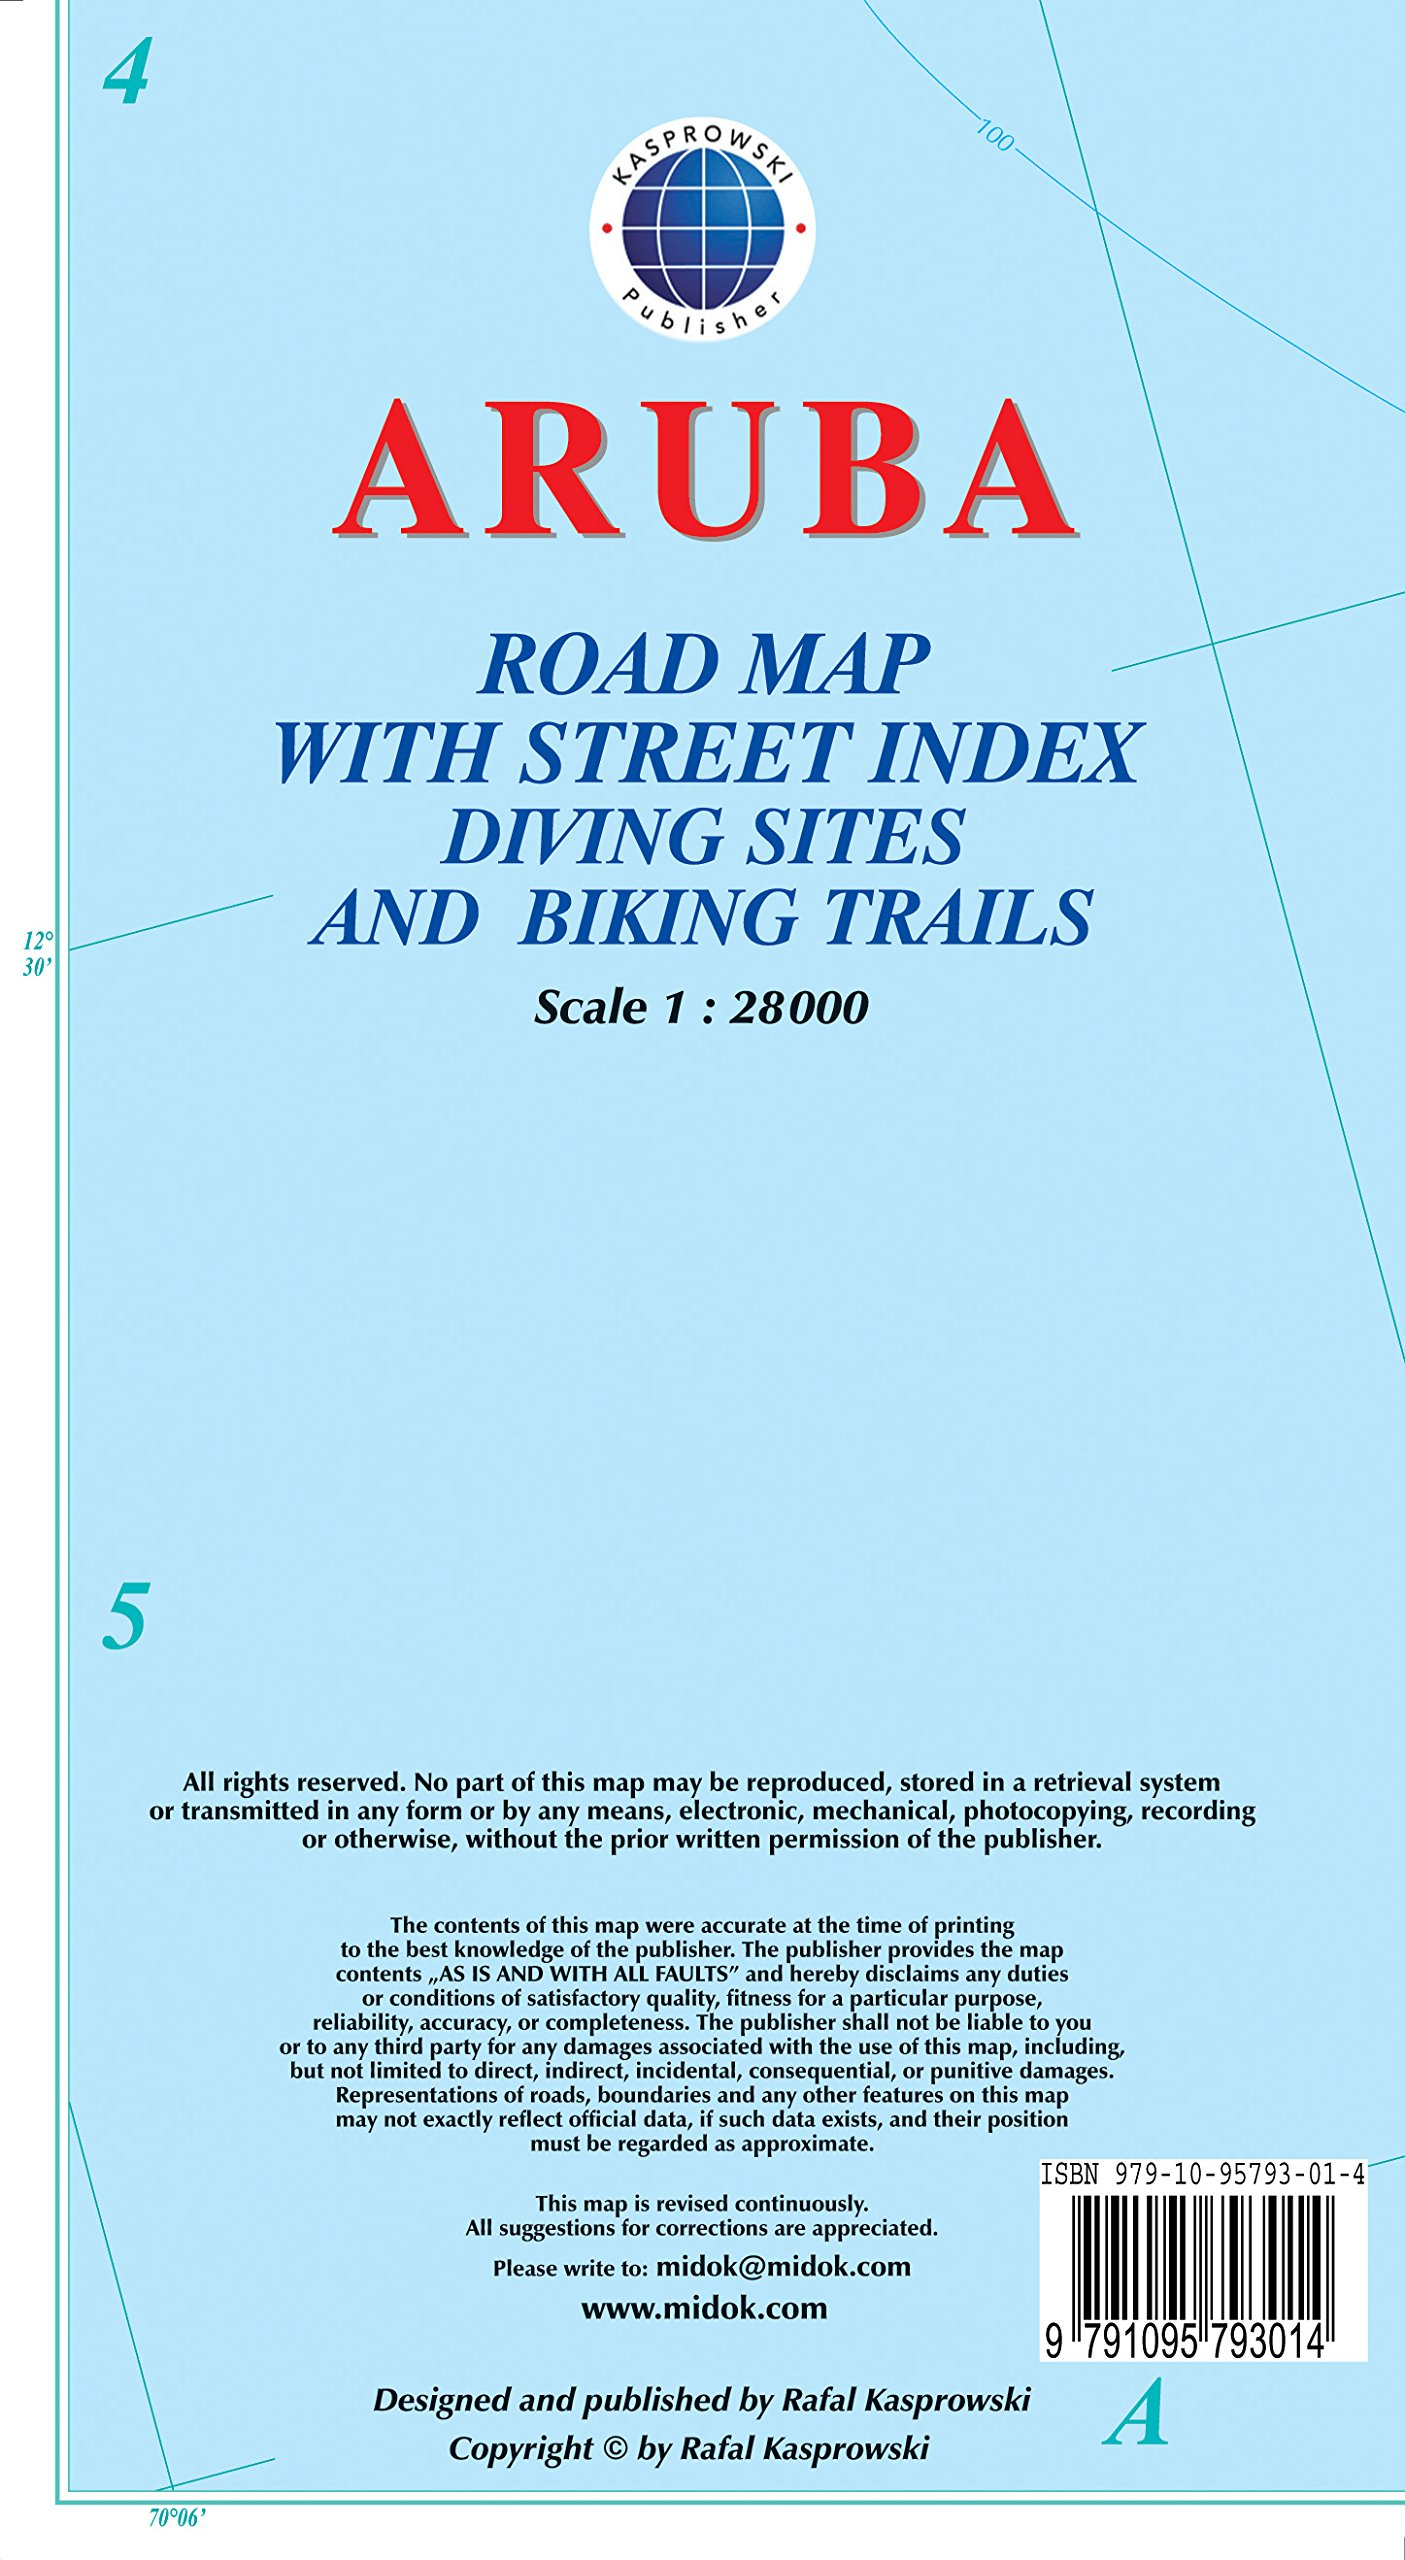 Aruba Road Map with Street Index Diving Sites and Biking Trails